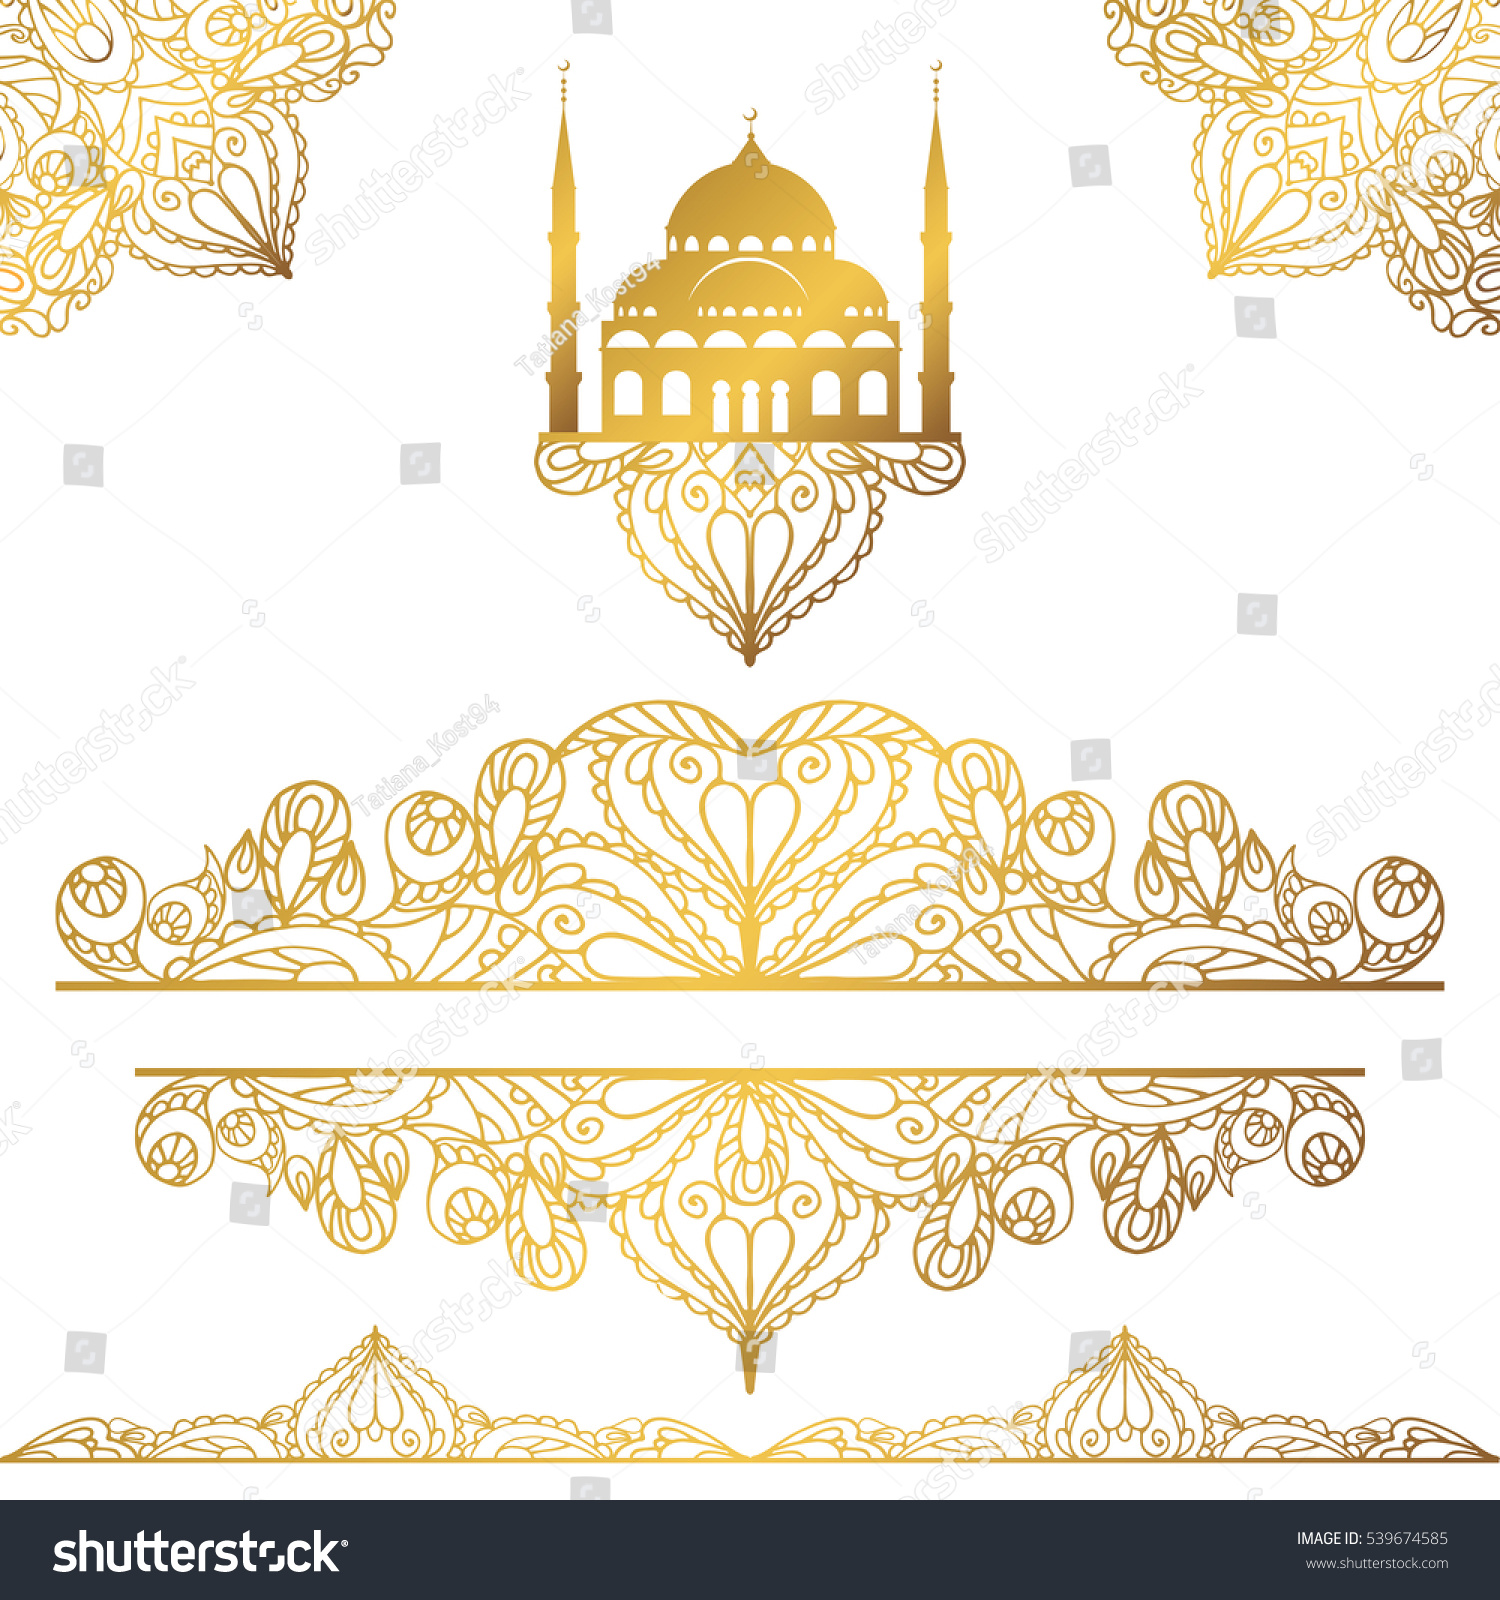 islamicarabic mosqueseamless pattern bordersarabesque decorvector gold stock vector royalty free 539674585 https www shutterstock com image vector islamicarabic mosqueseamless pattern bordersarabesque decor gold 539674585